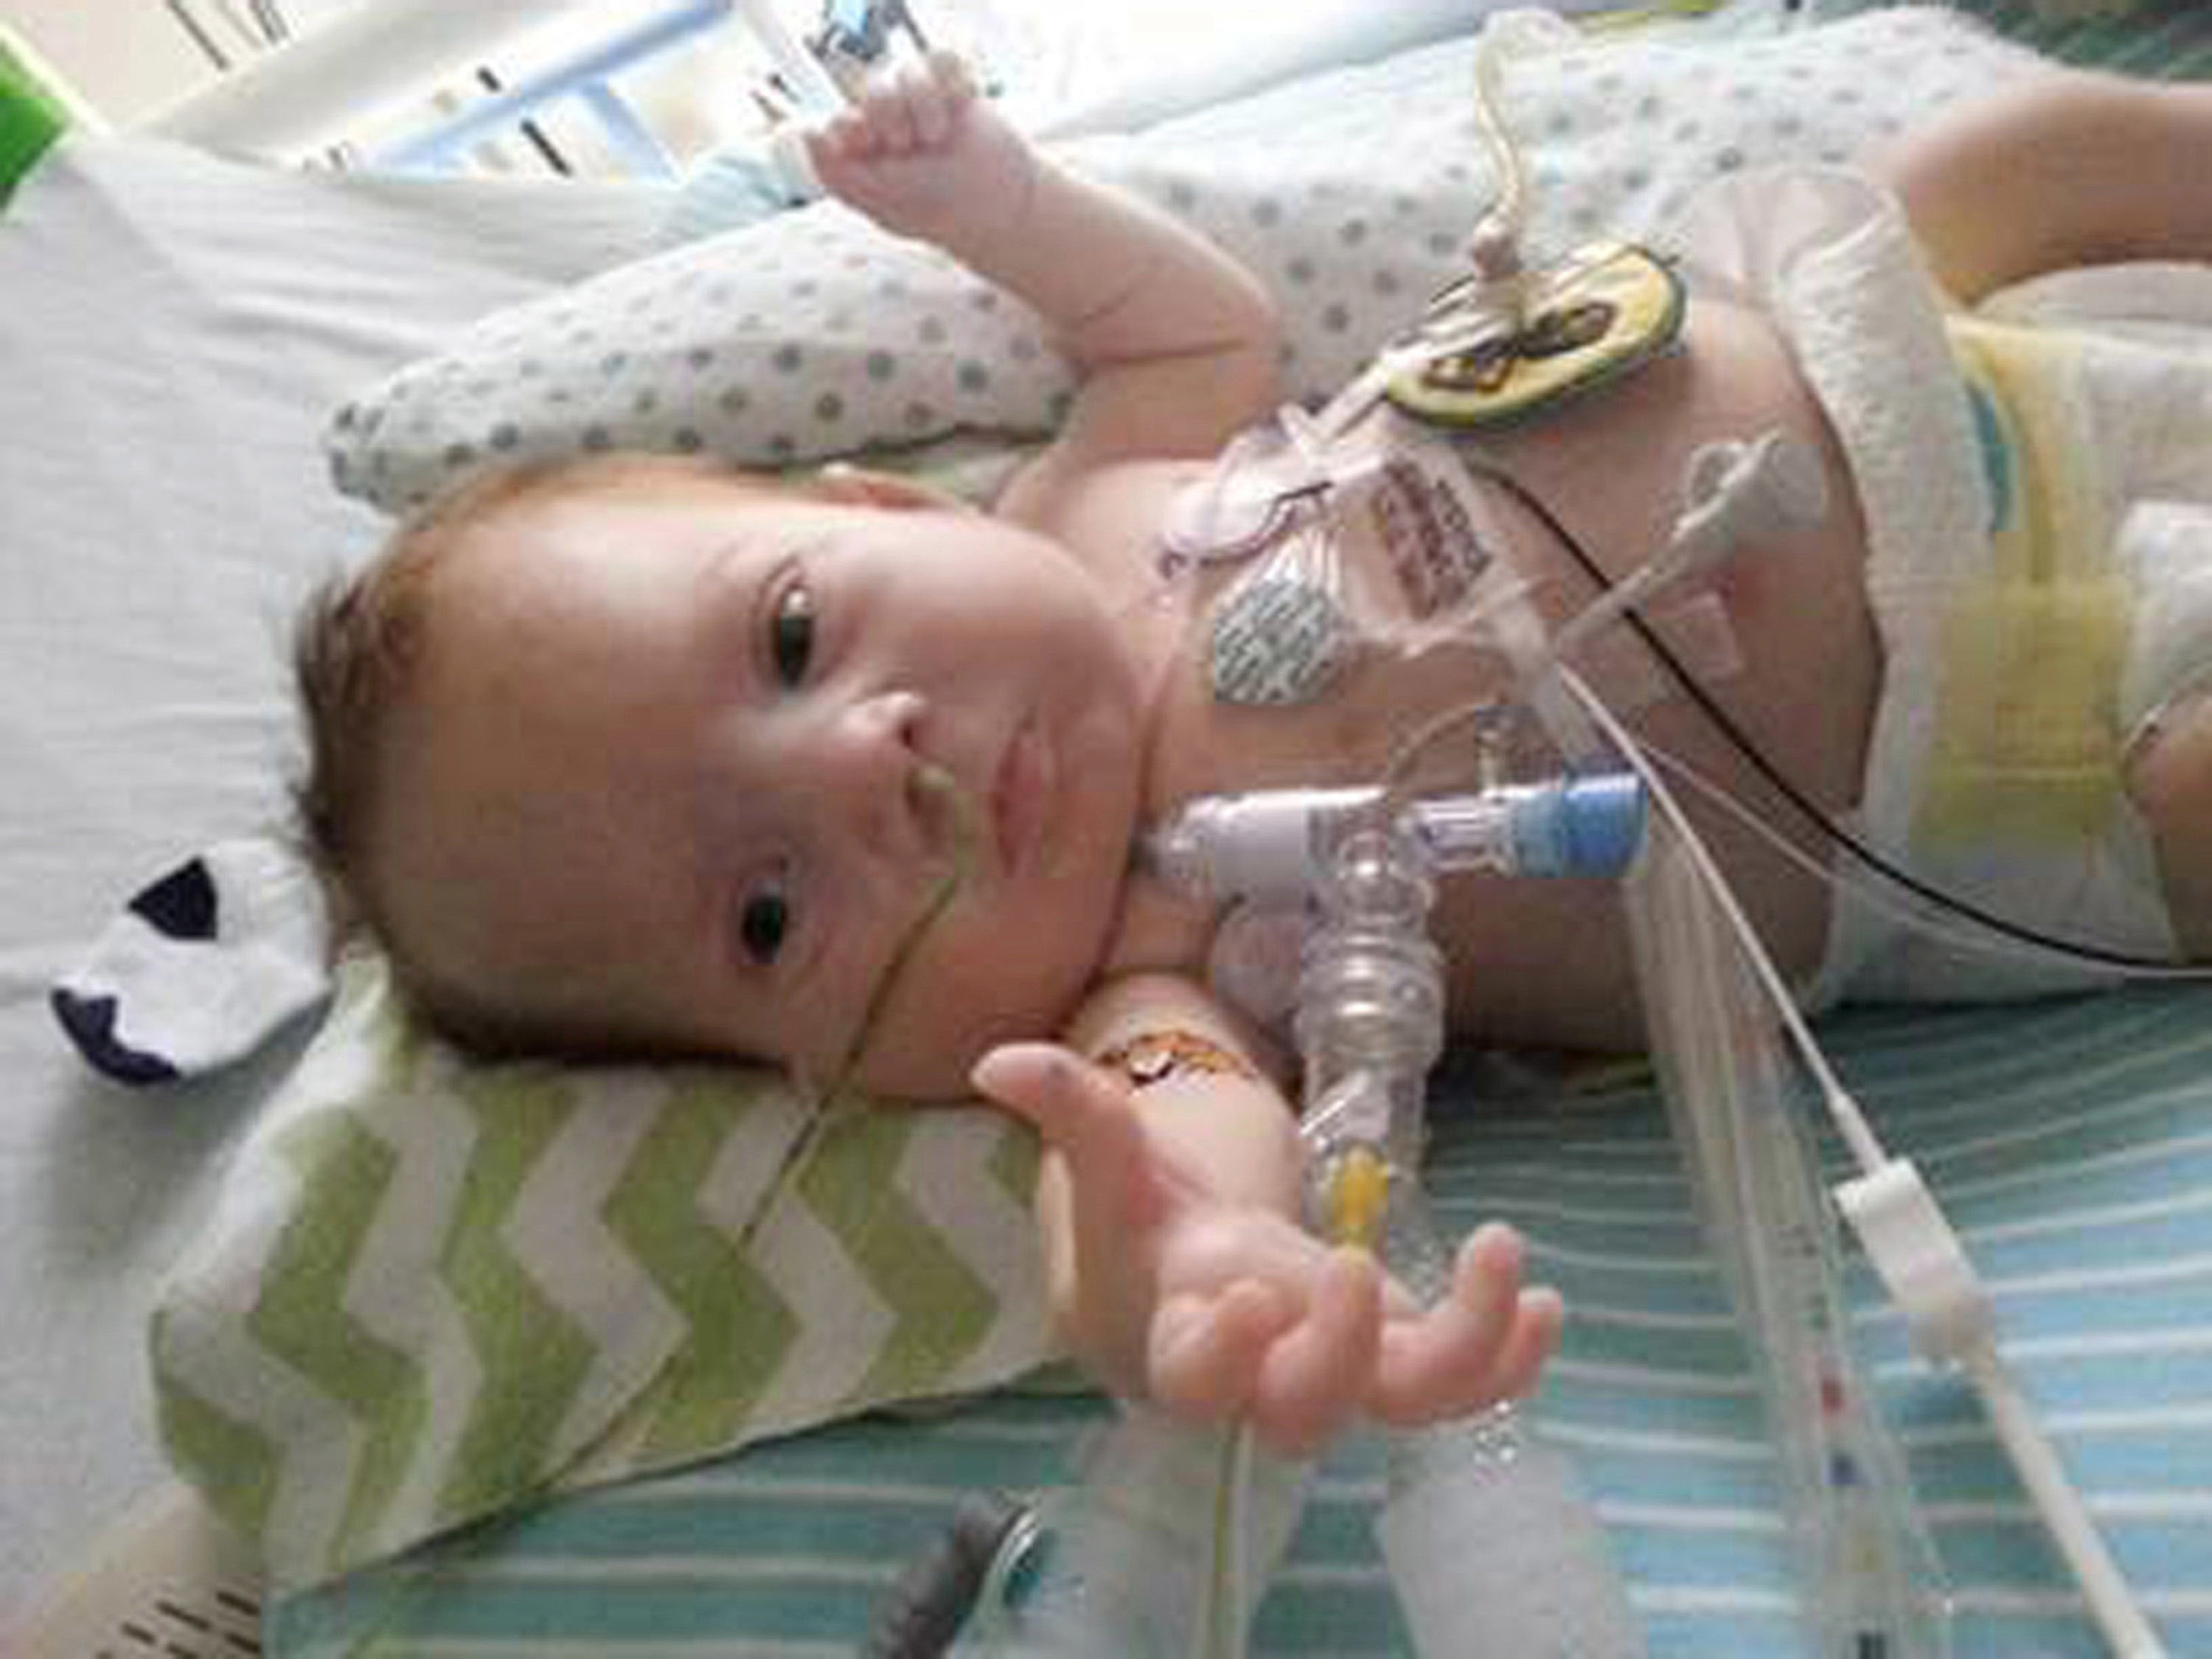 Corbin, the baby who lived for four months after his birth in April 2013. Photo: Kara McHenry via AP